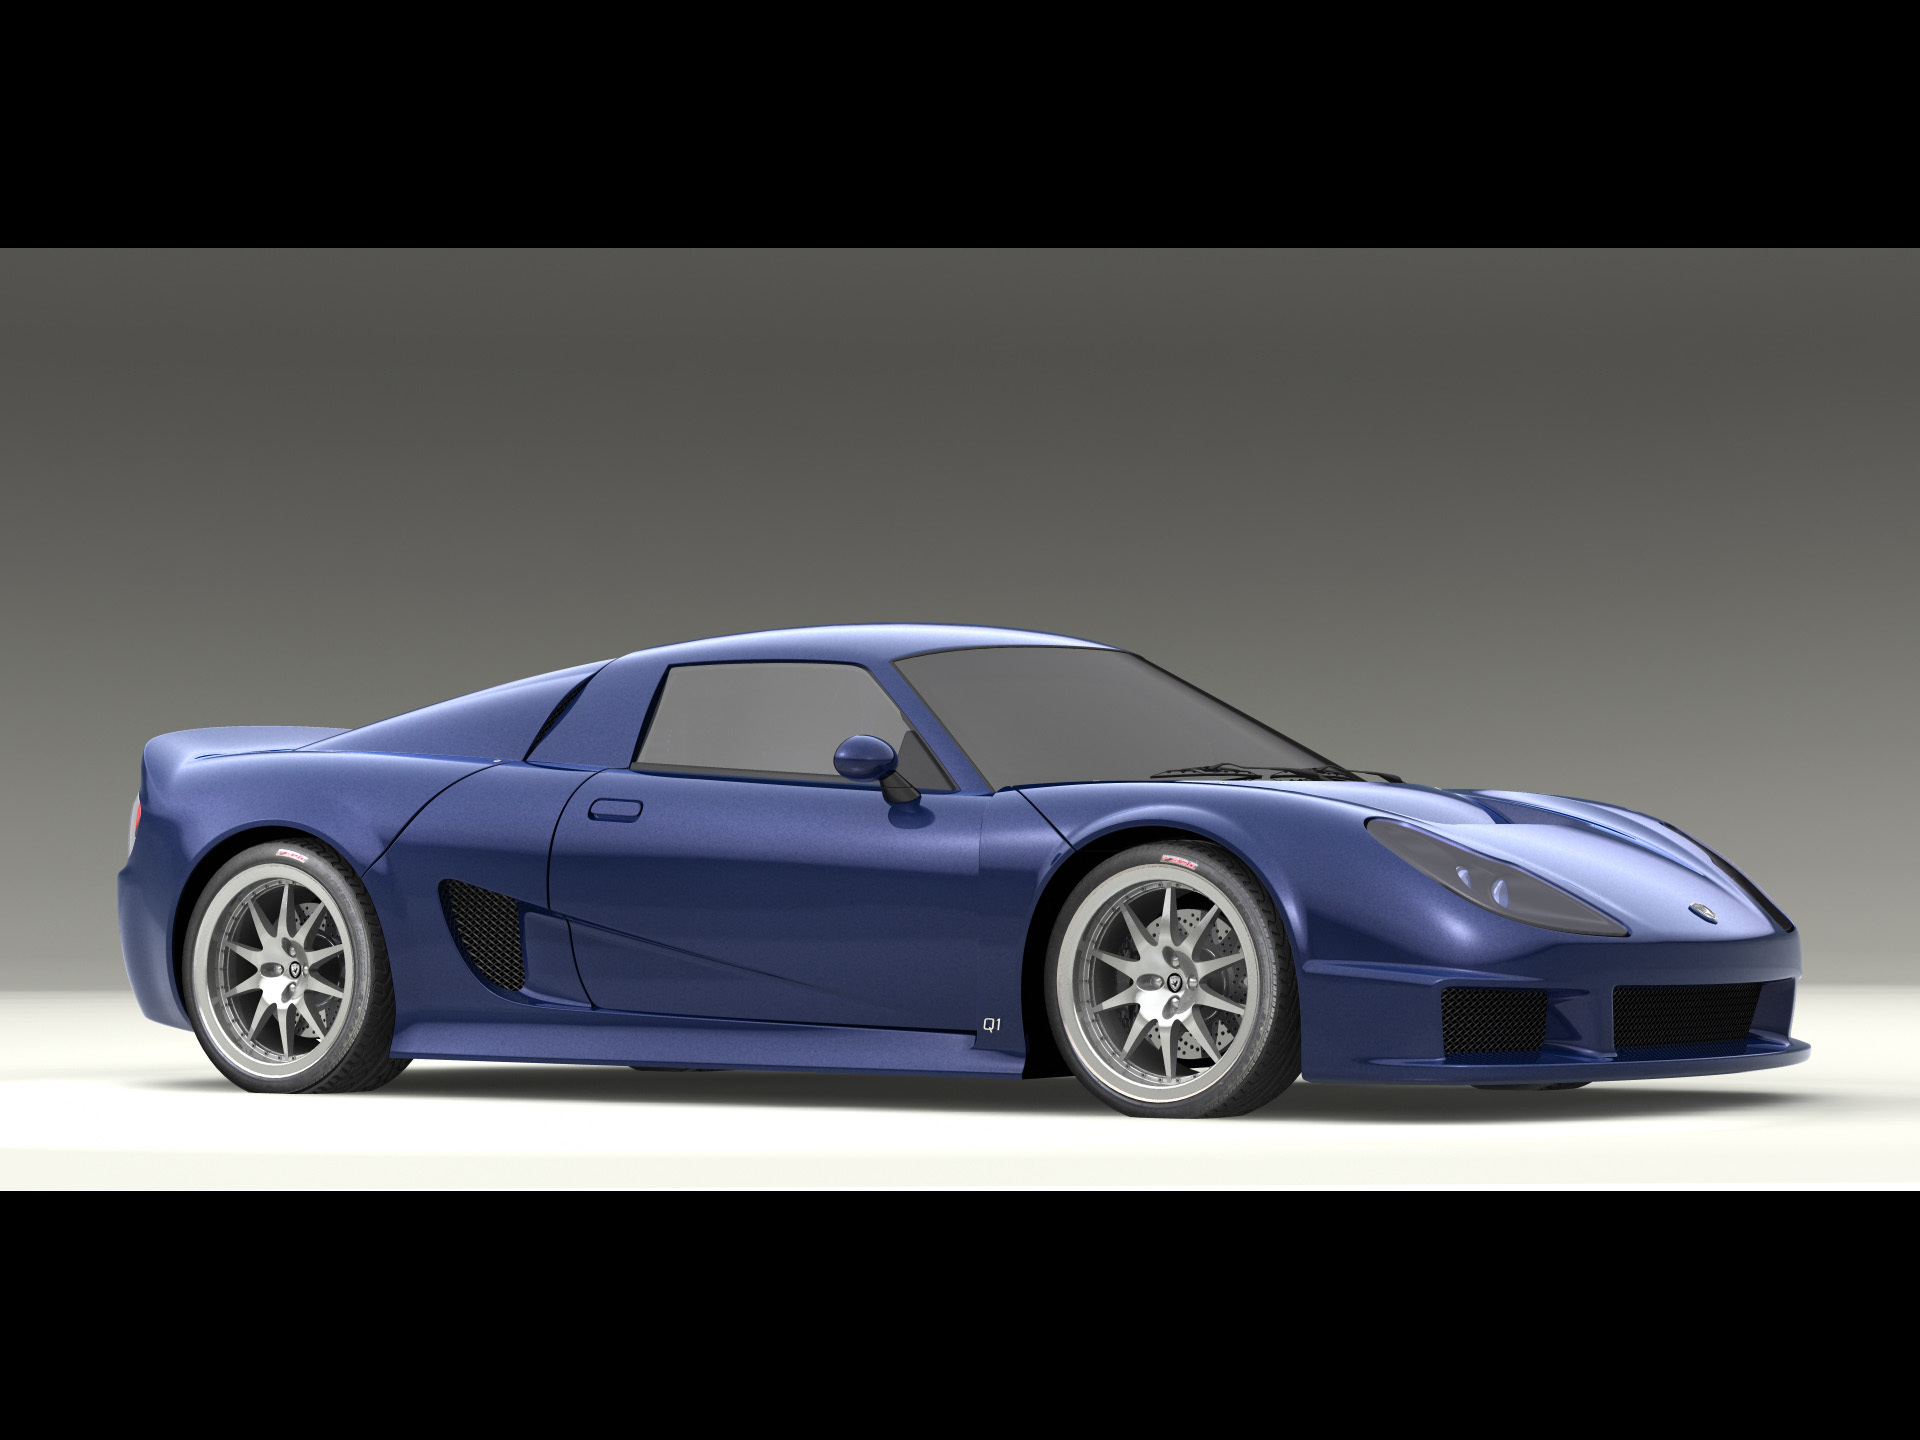 cars vehicles Rossion Q1 HD Wallpaper